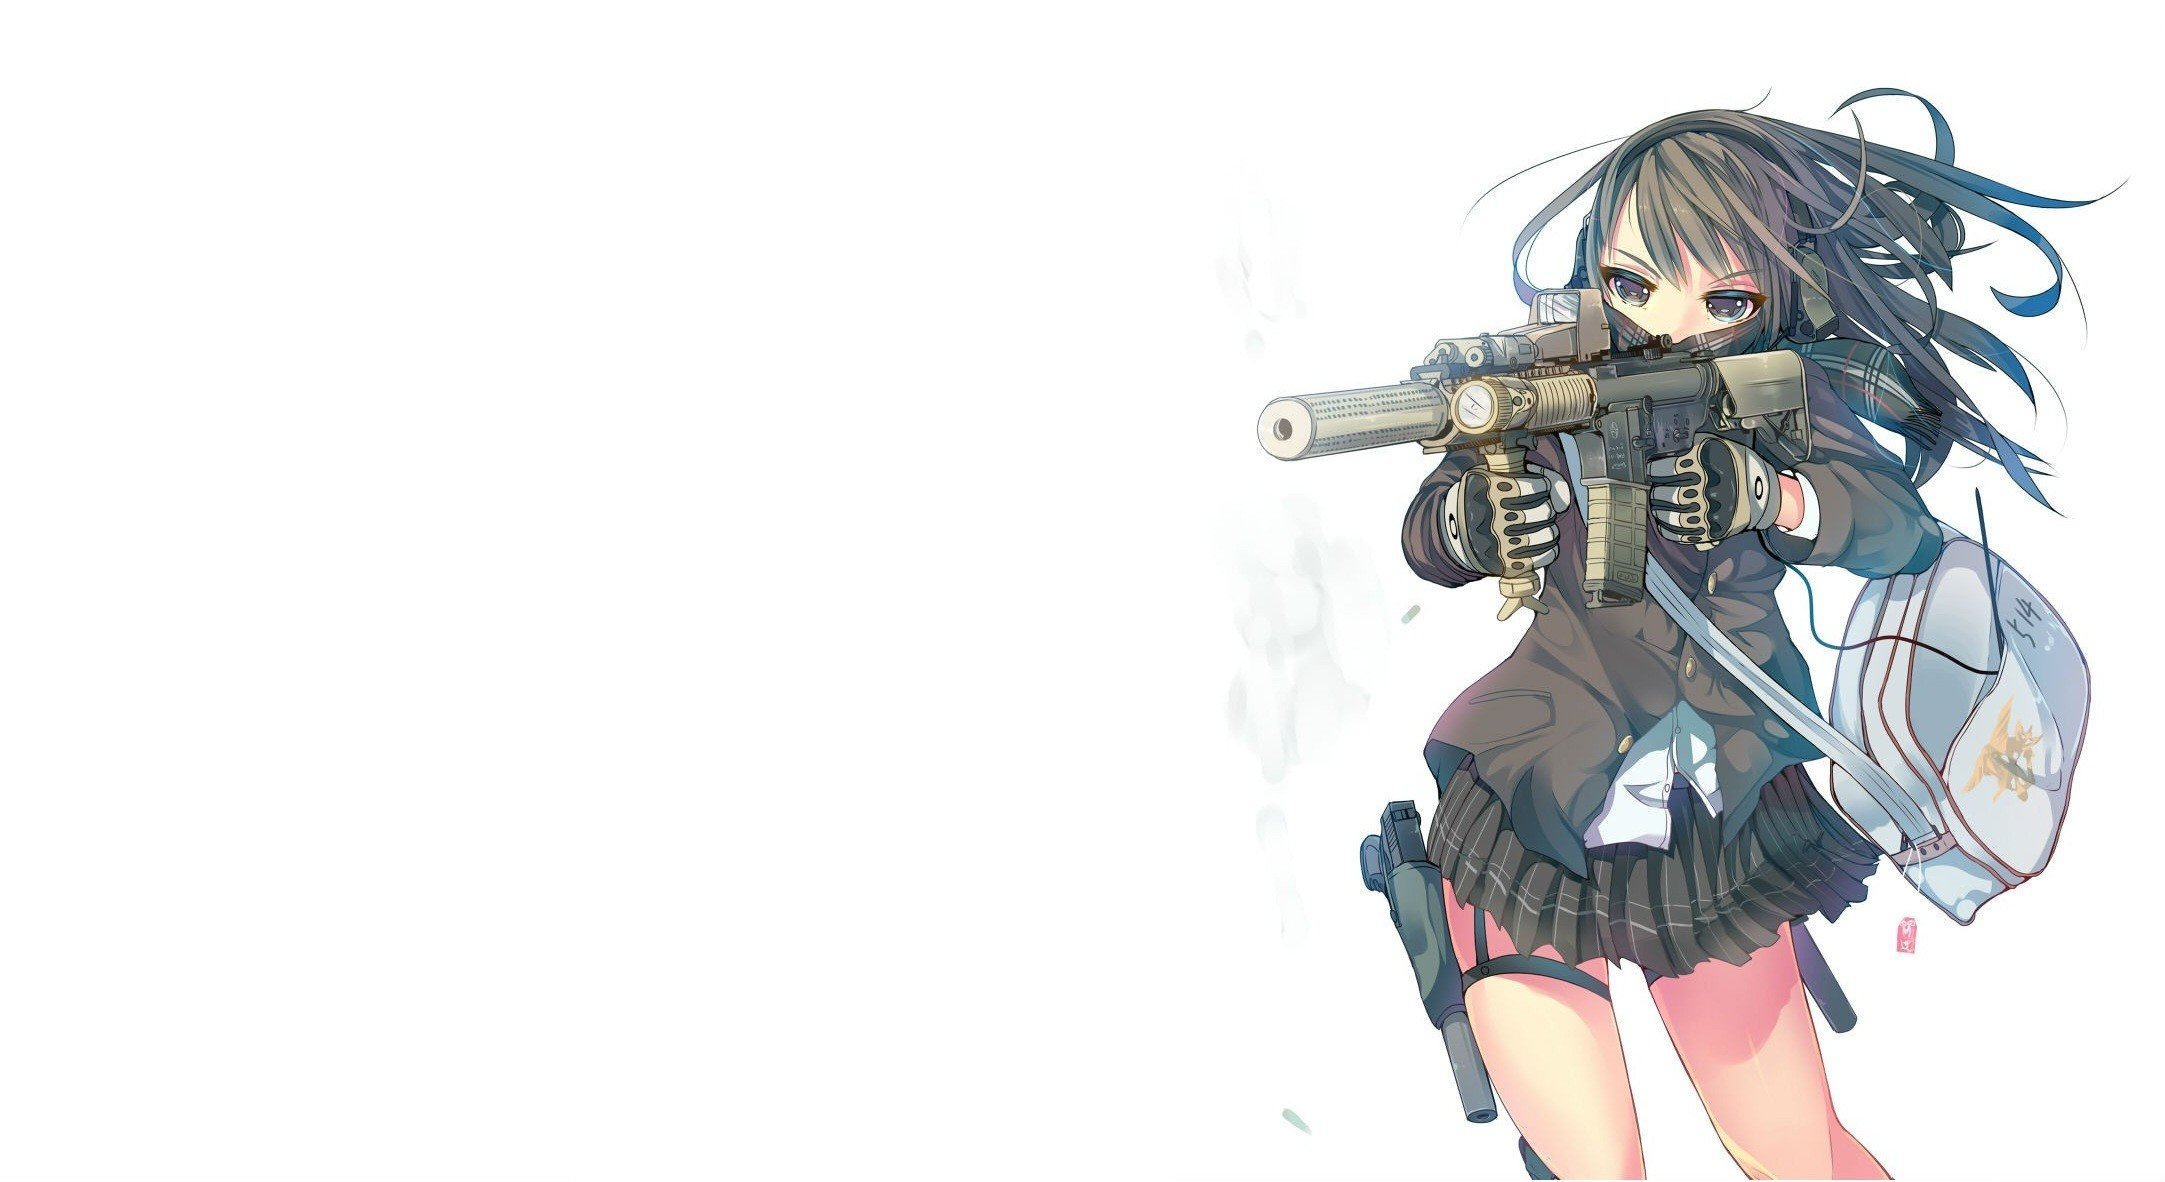 Original characters anime anime girls gun school - Gun girl anime ...